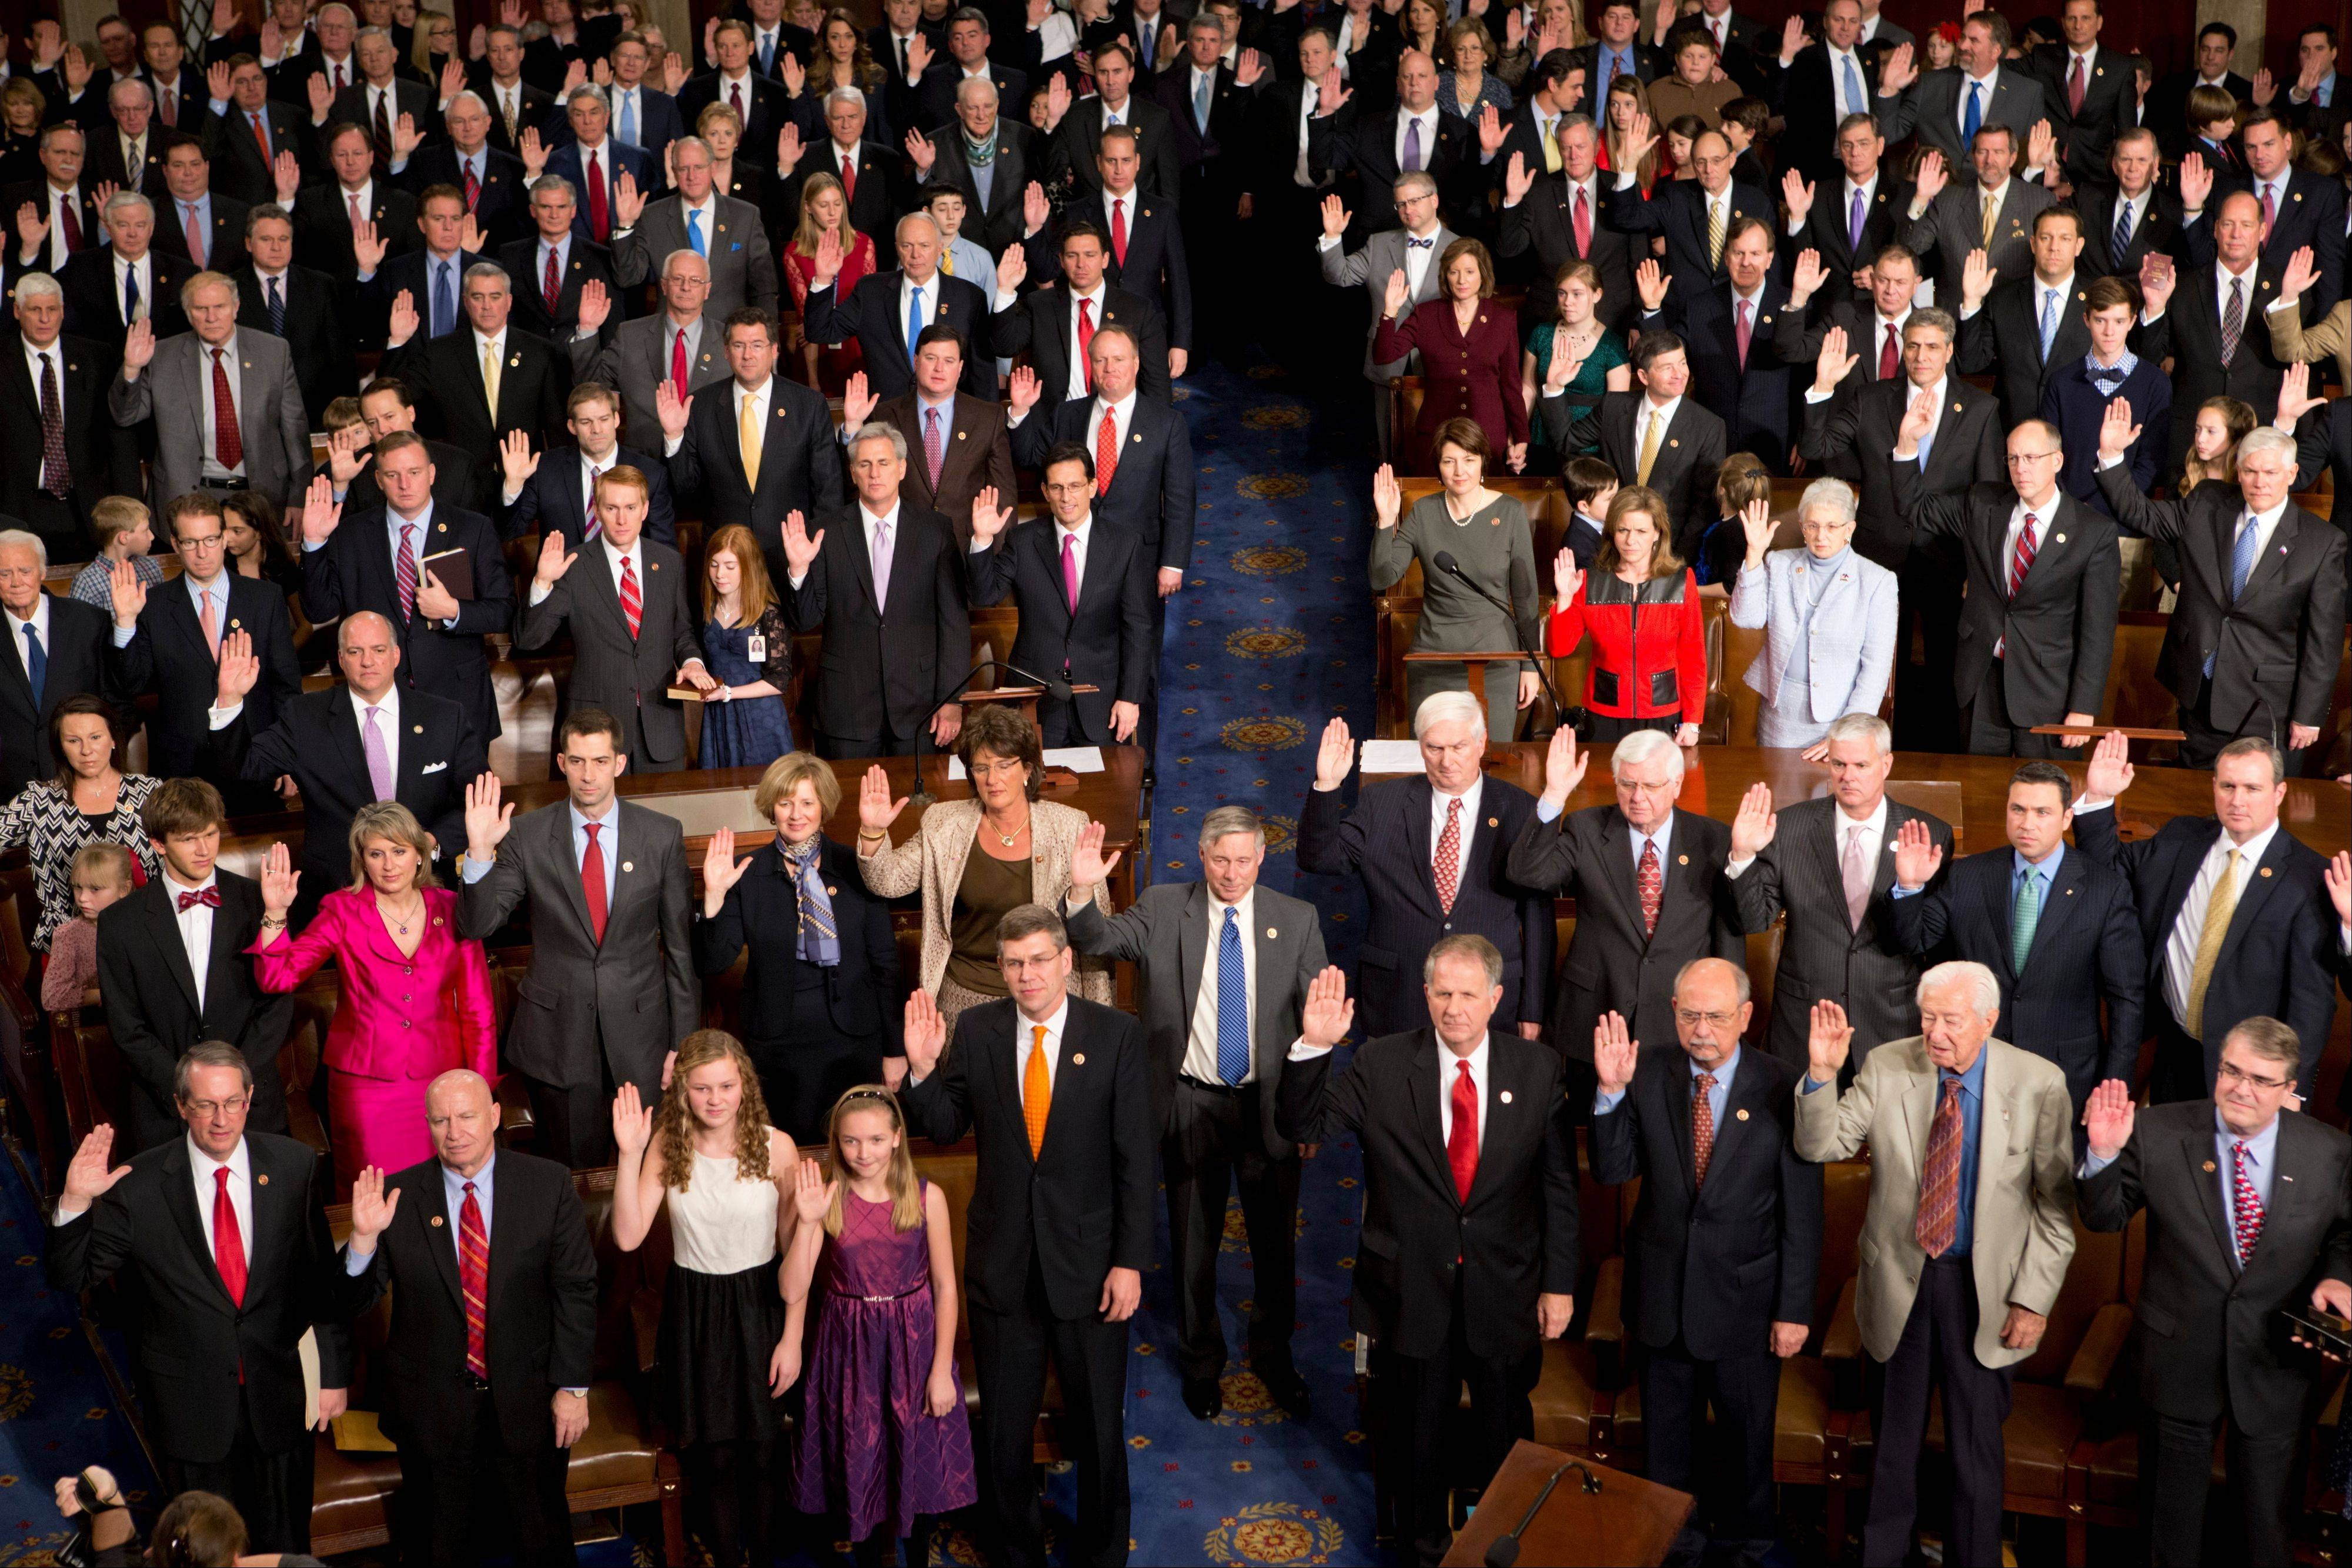 Members of the 113th Congress, many accompanied by family members, take the oath of office Thursday in the House of Representatives chamber on Capitol Hill in Washington.